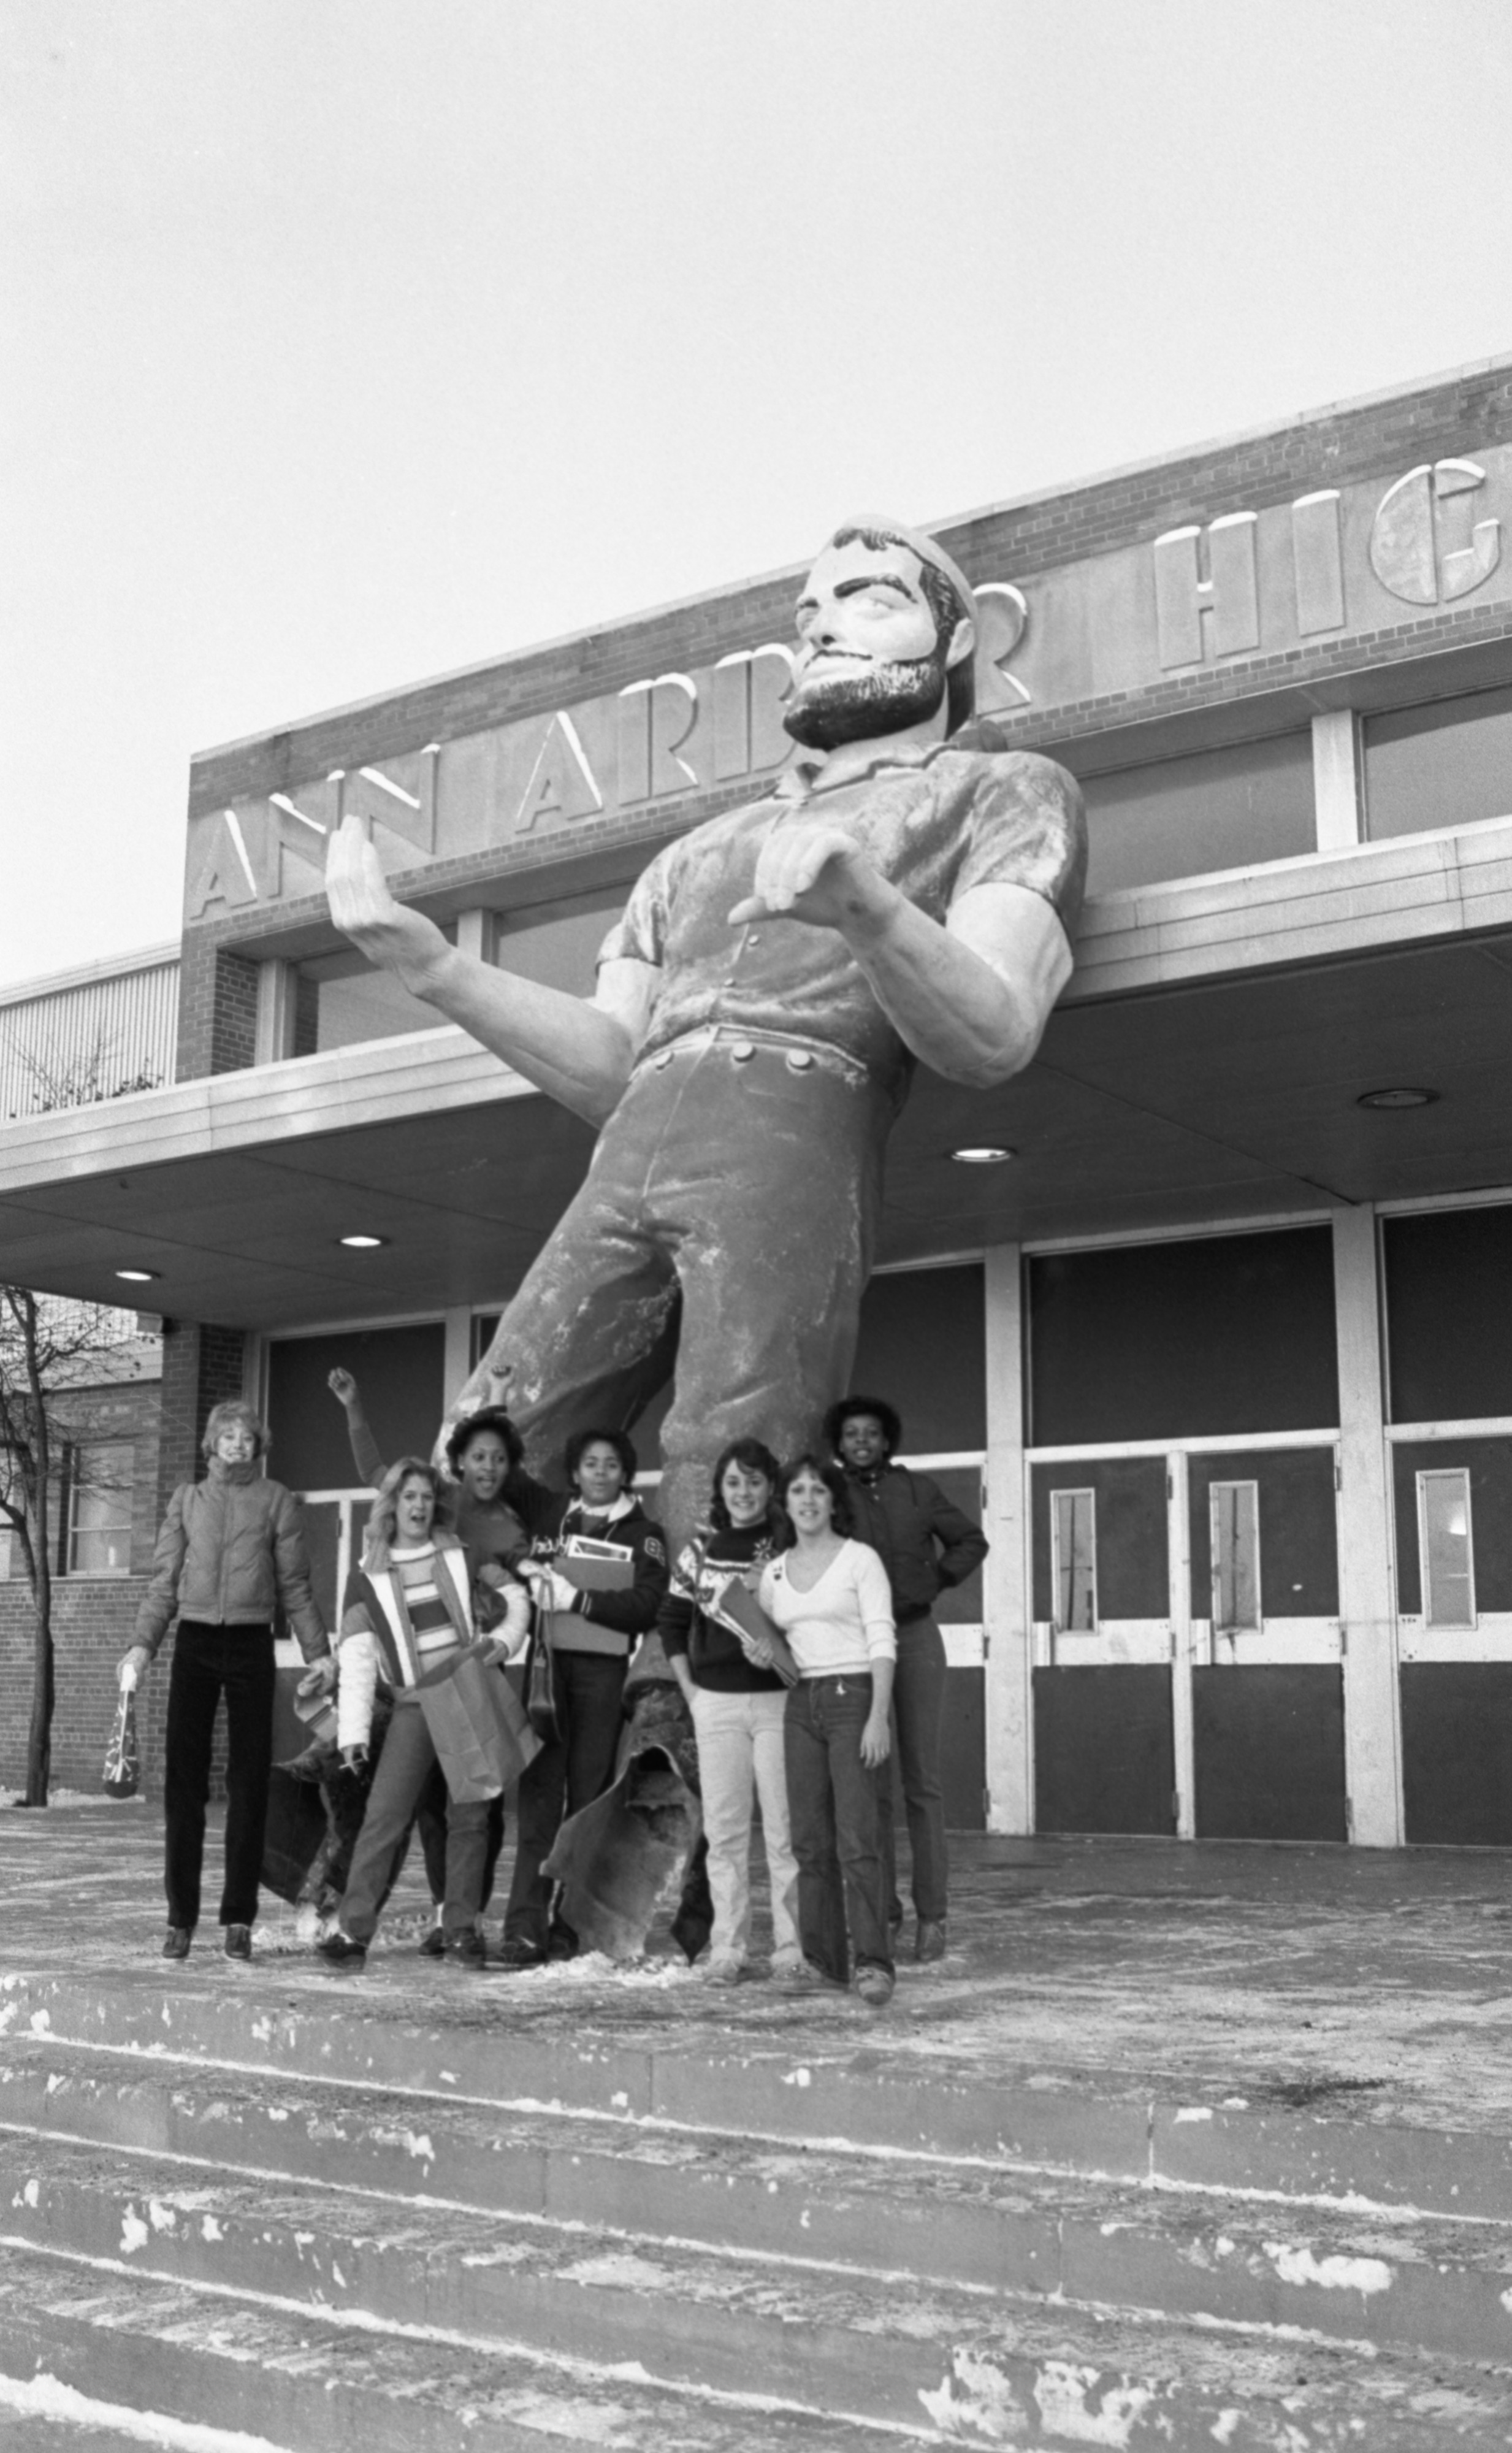 Stolen Paul Bunyan Statue Outside Pioneer High School, December 1981 image